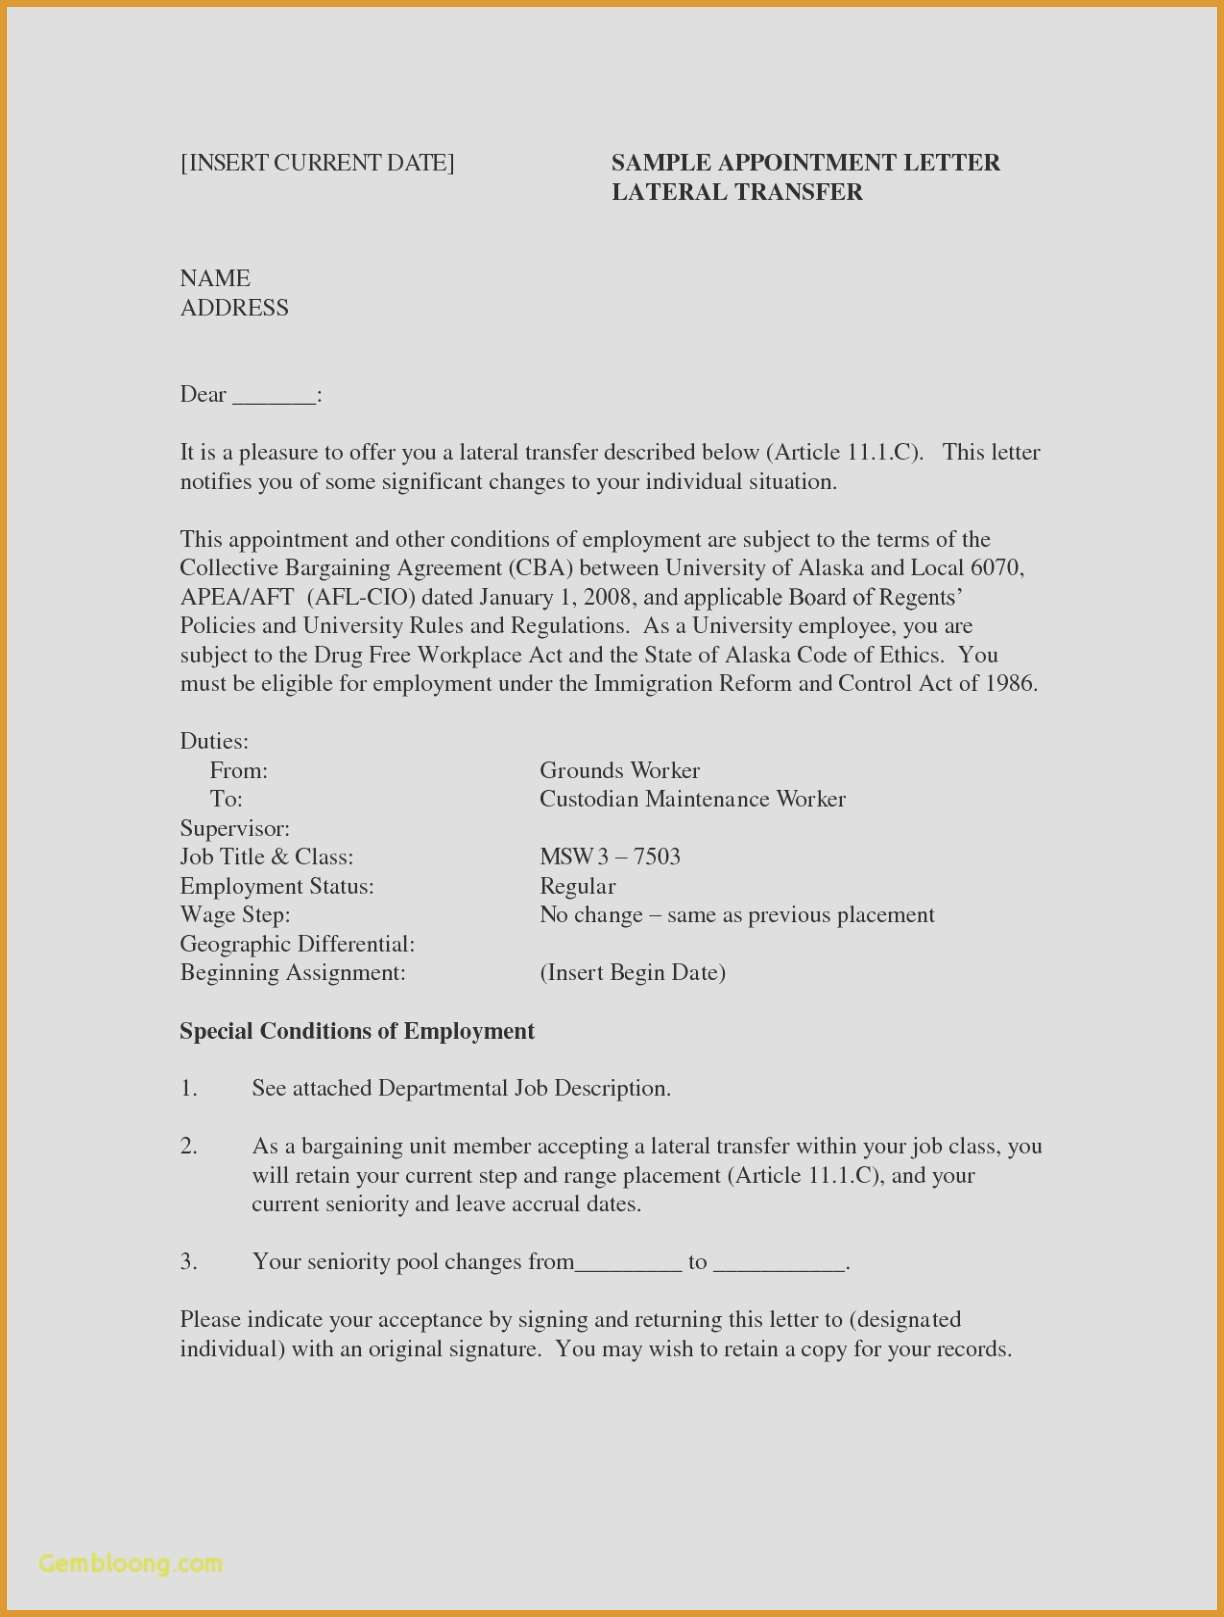 Accredited Investor Verification Letter Template - formats for Resumes